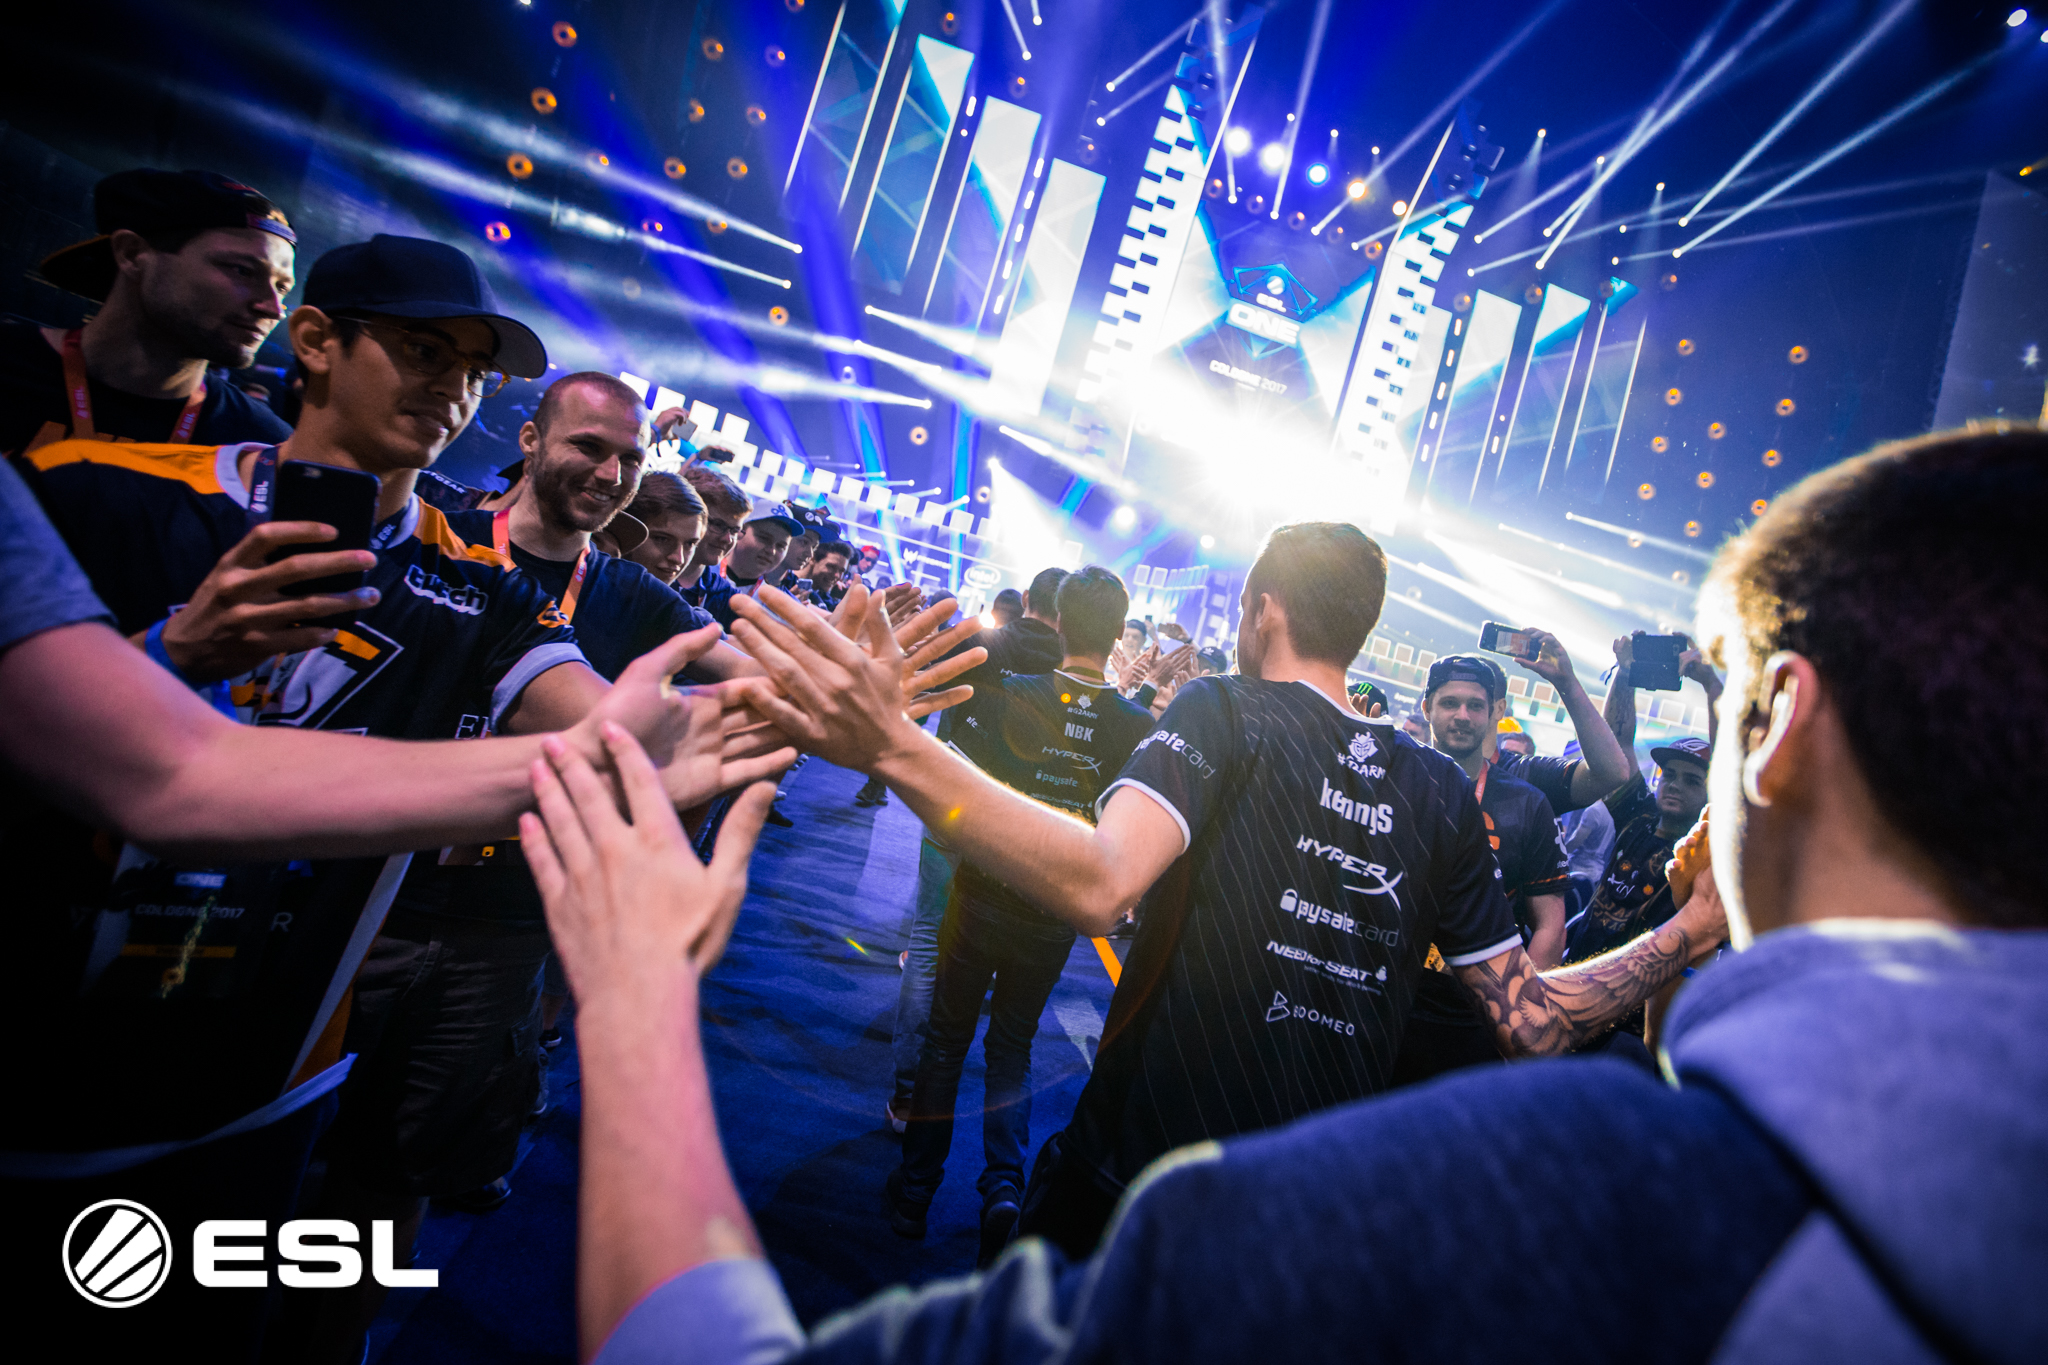 G2 joins the race with dominant win in Sweden